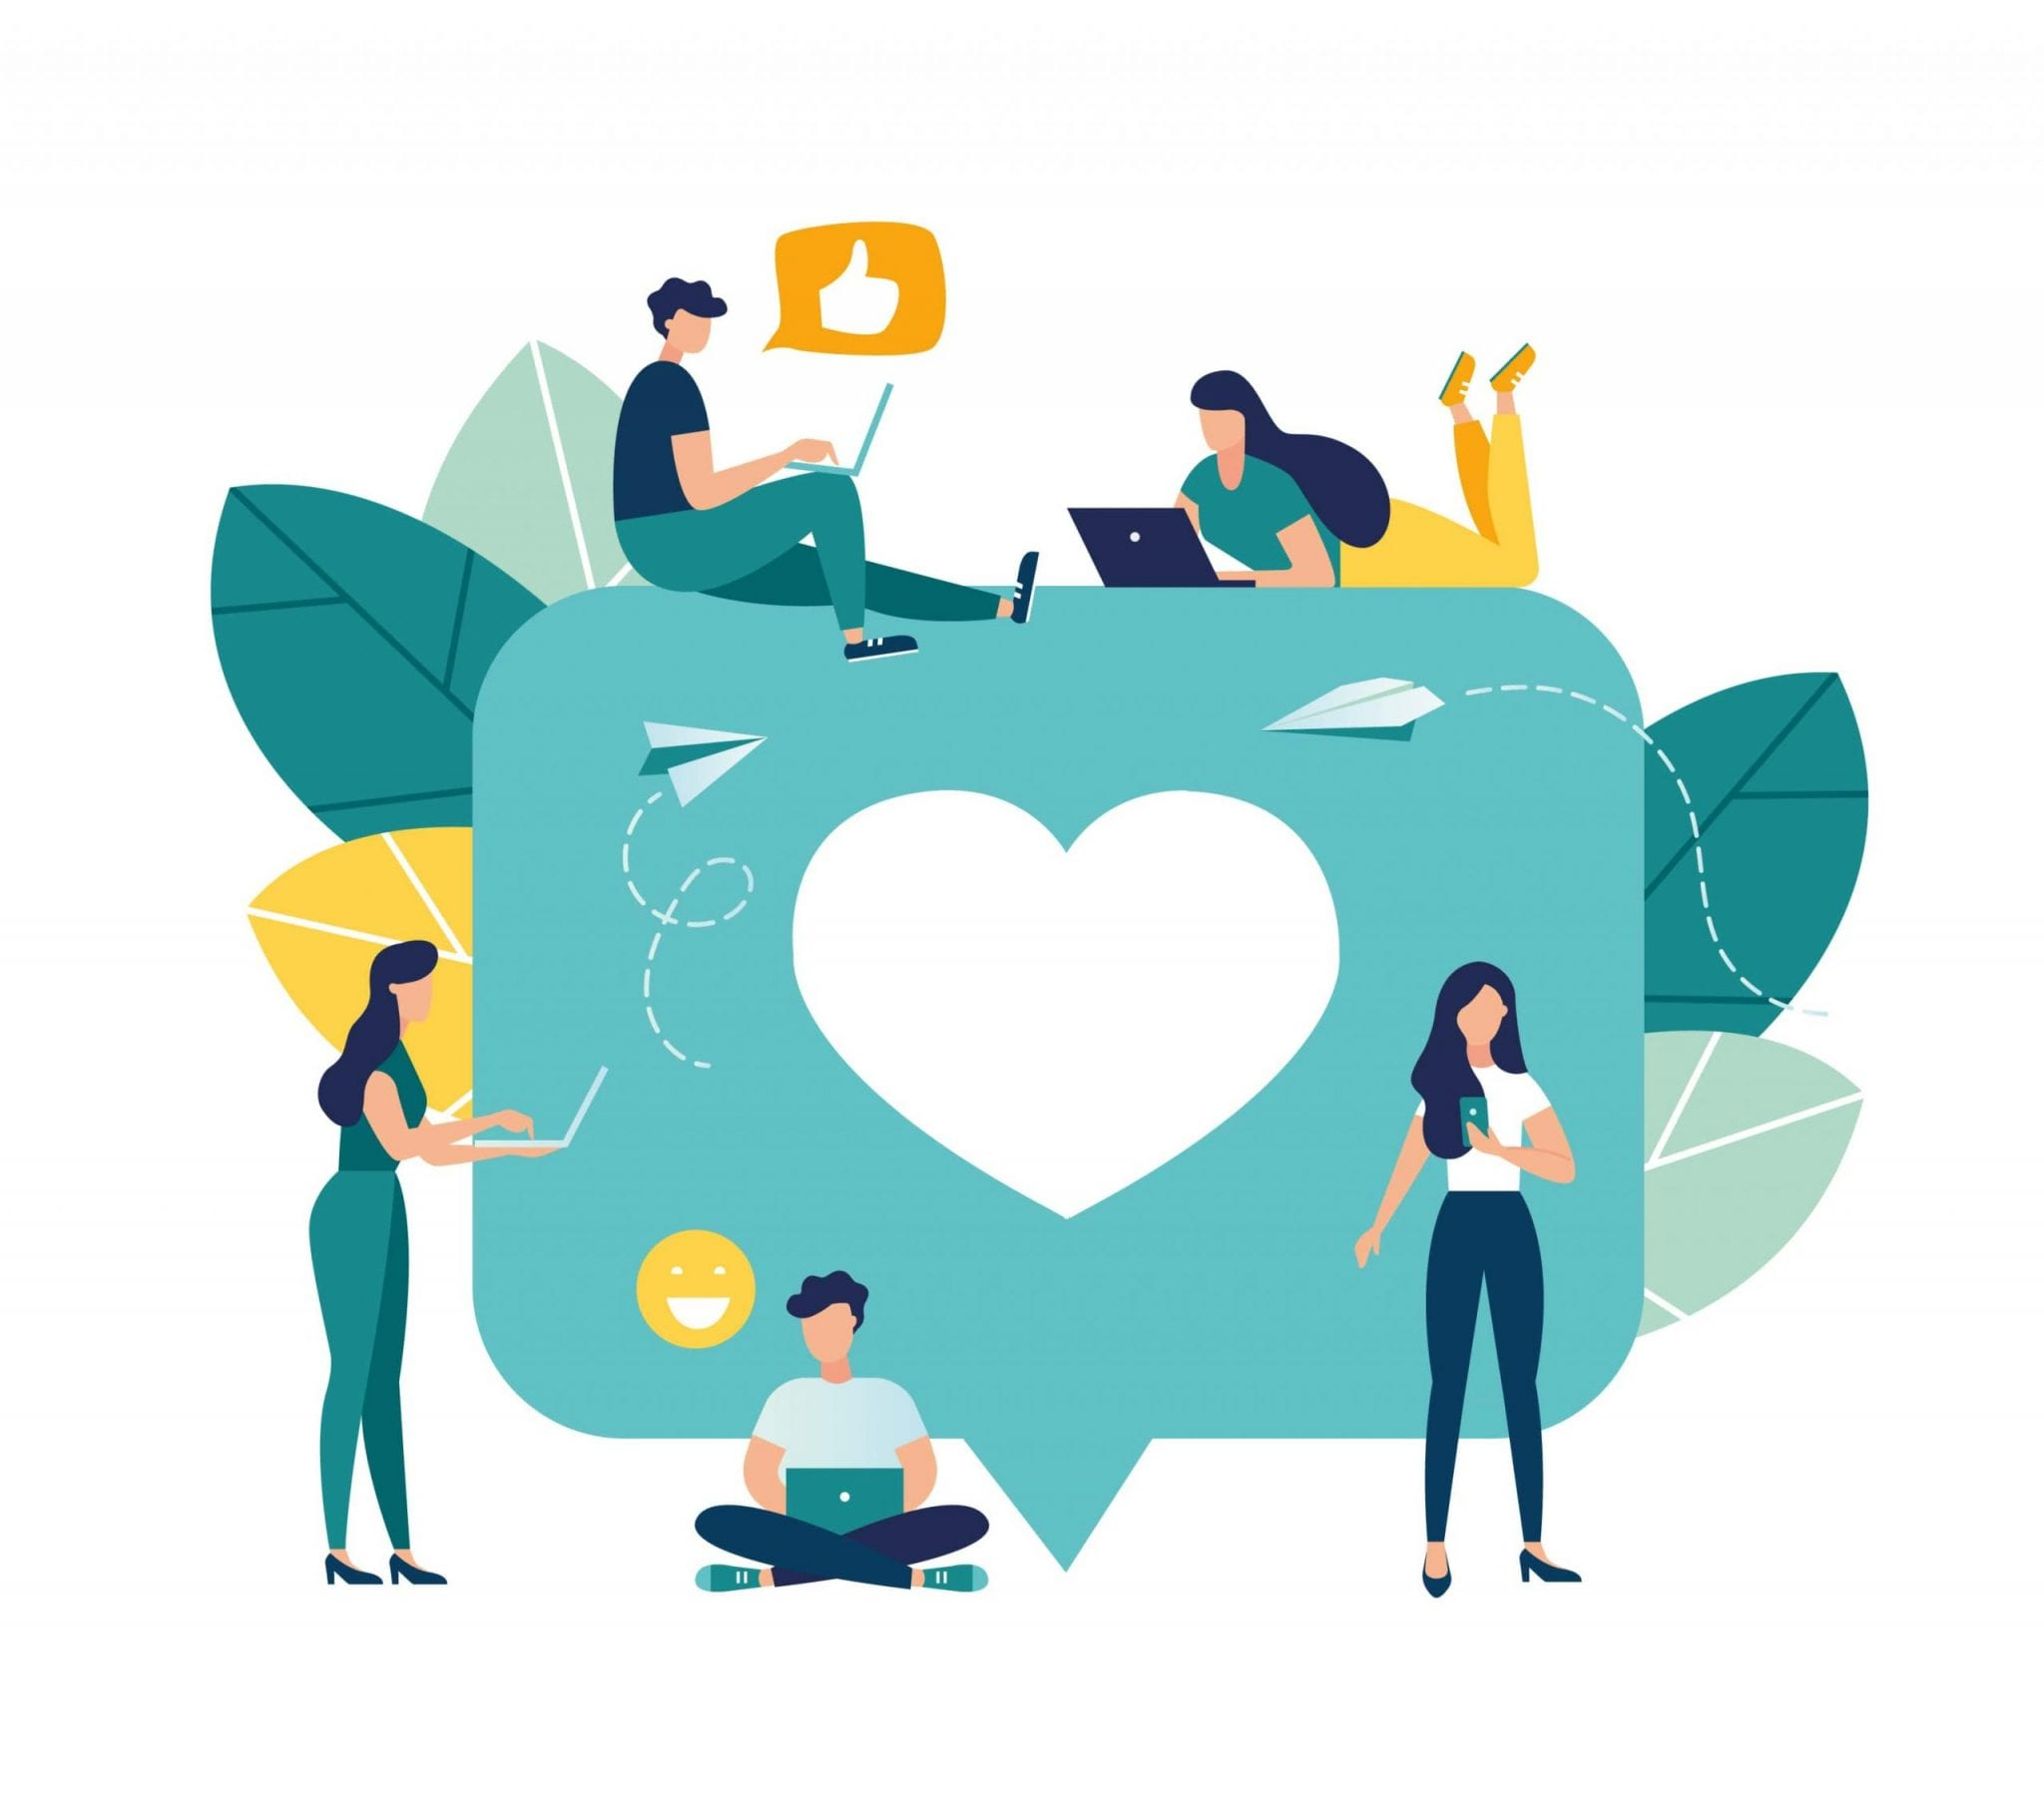 Vector Colorful Illustration of Communication via the Internet, Social Networking, Chat, Video, News, Messages, Web Site, Search Friends, Mobile Web Graphics.